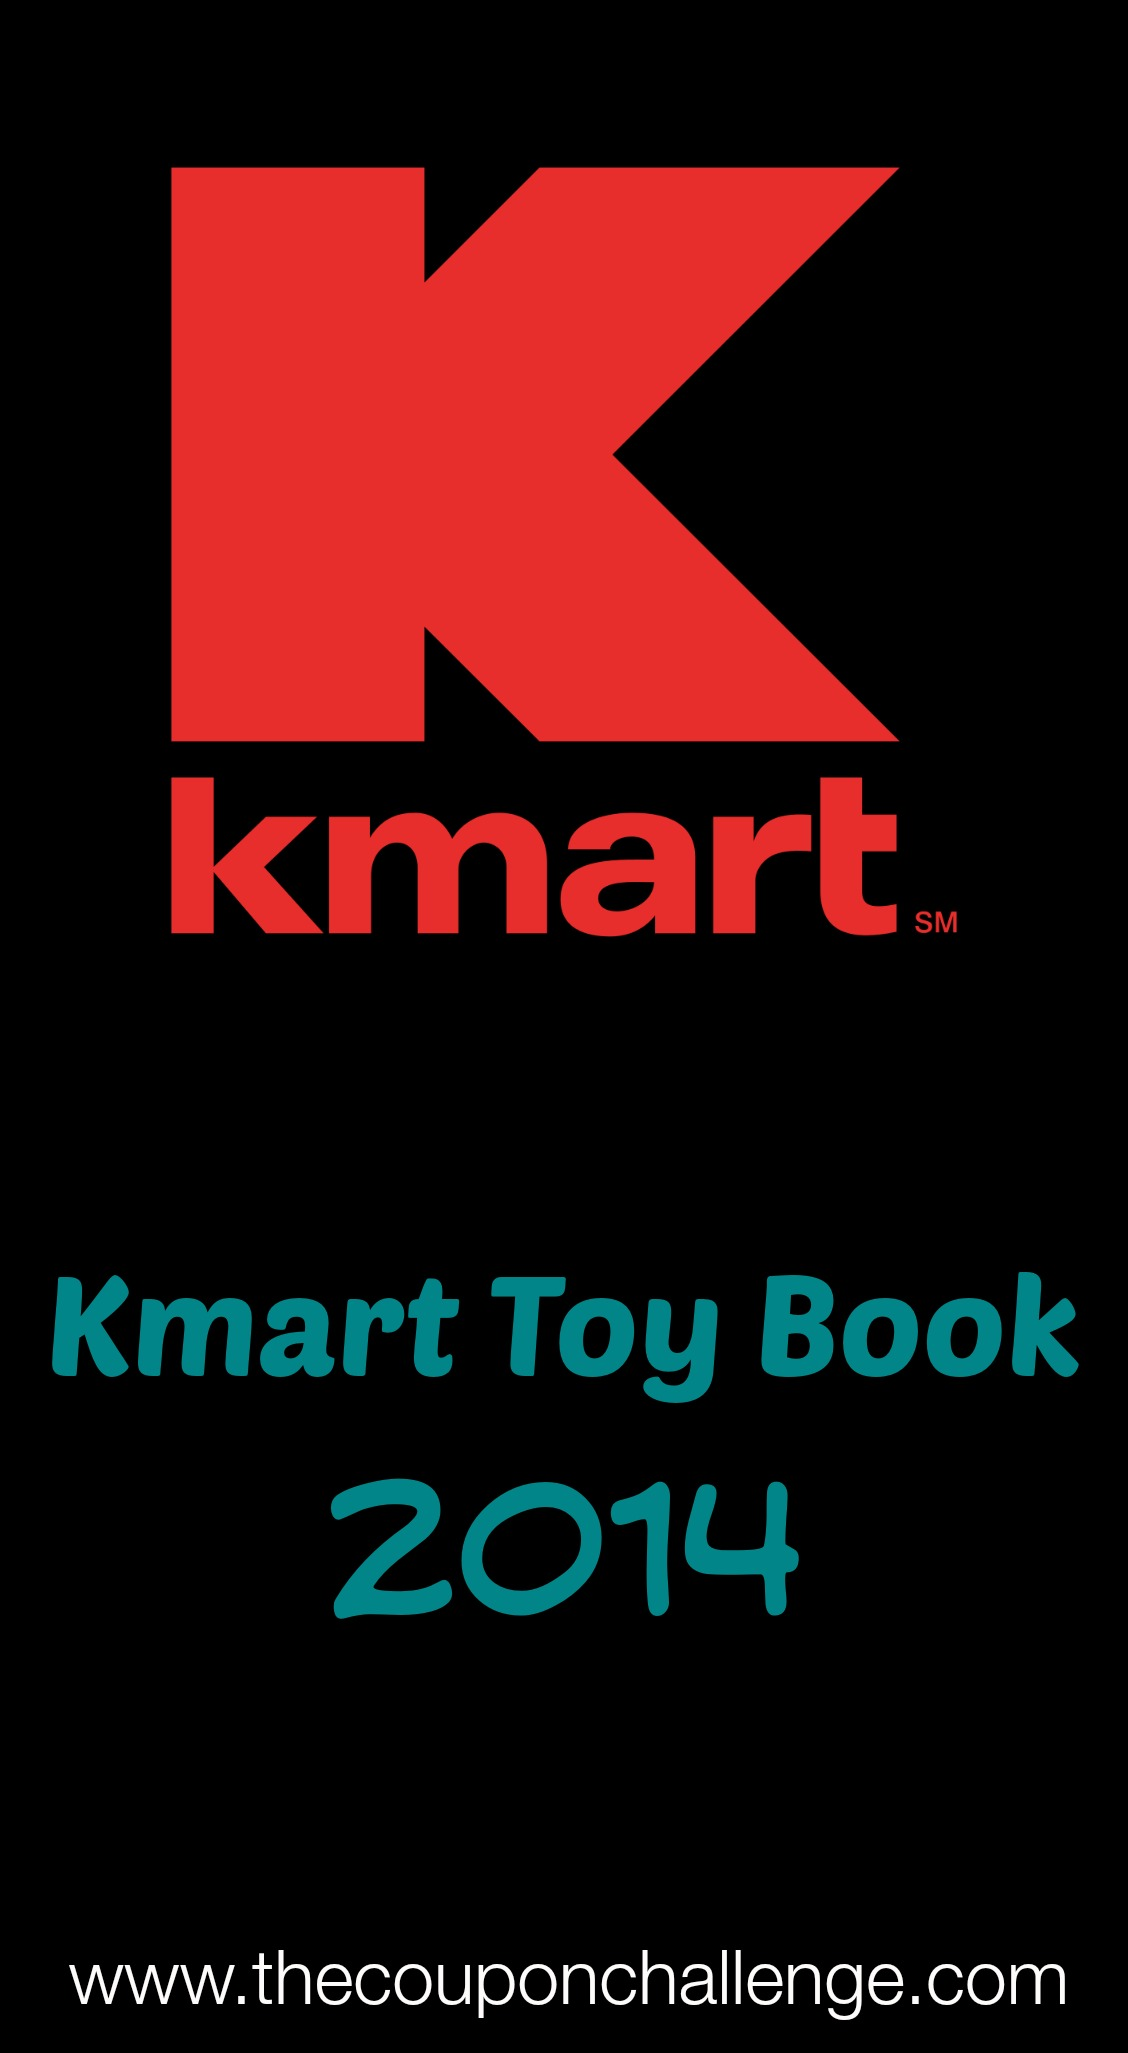 Kmart Toy Book 2014